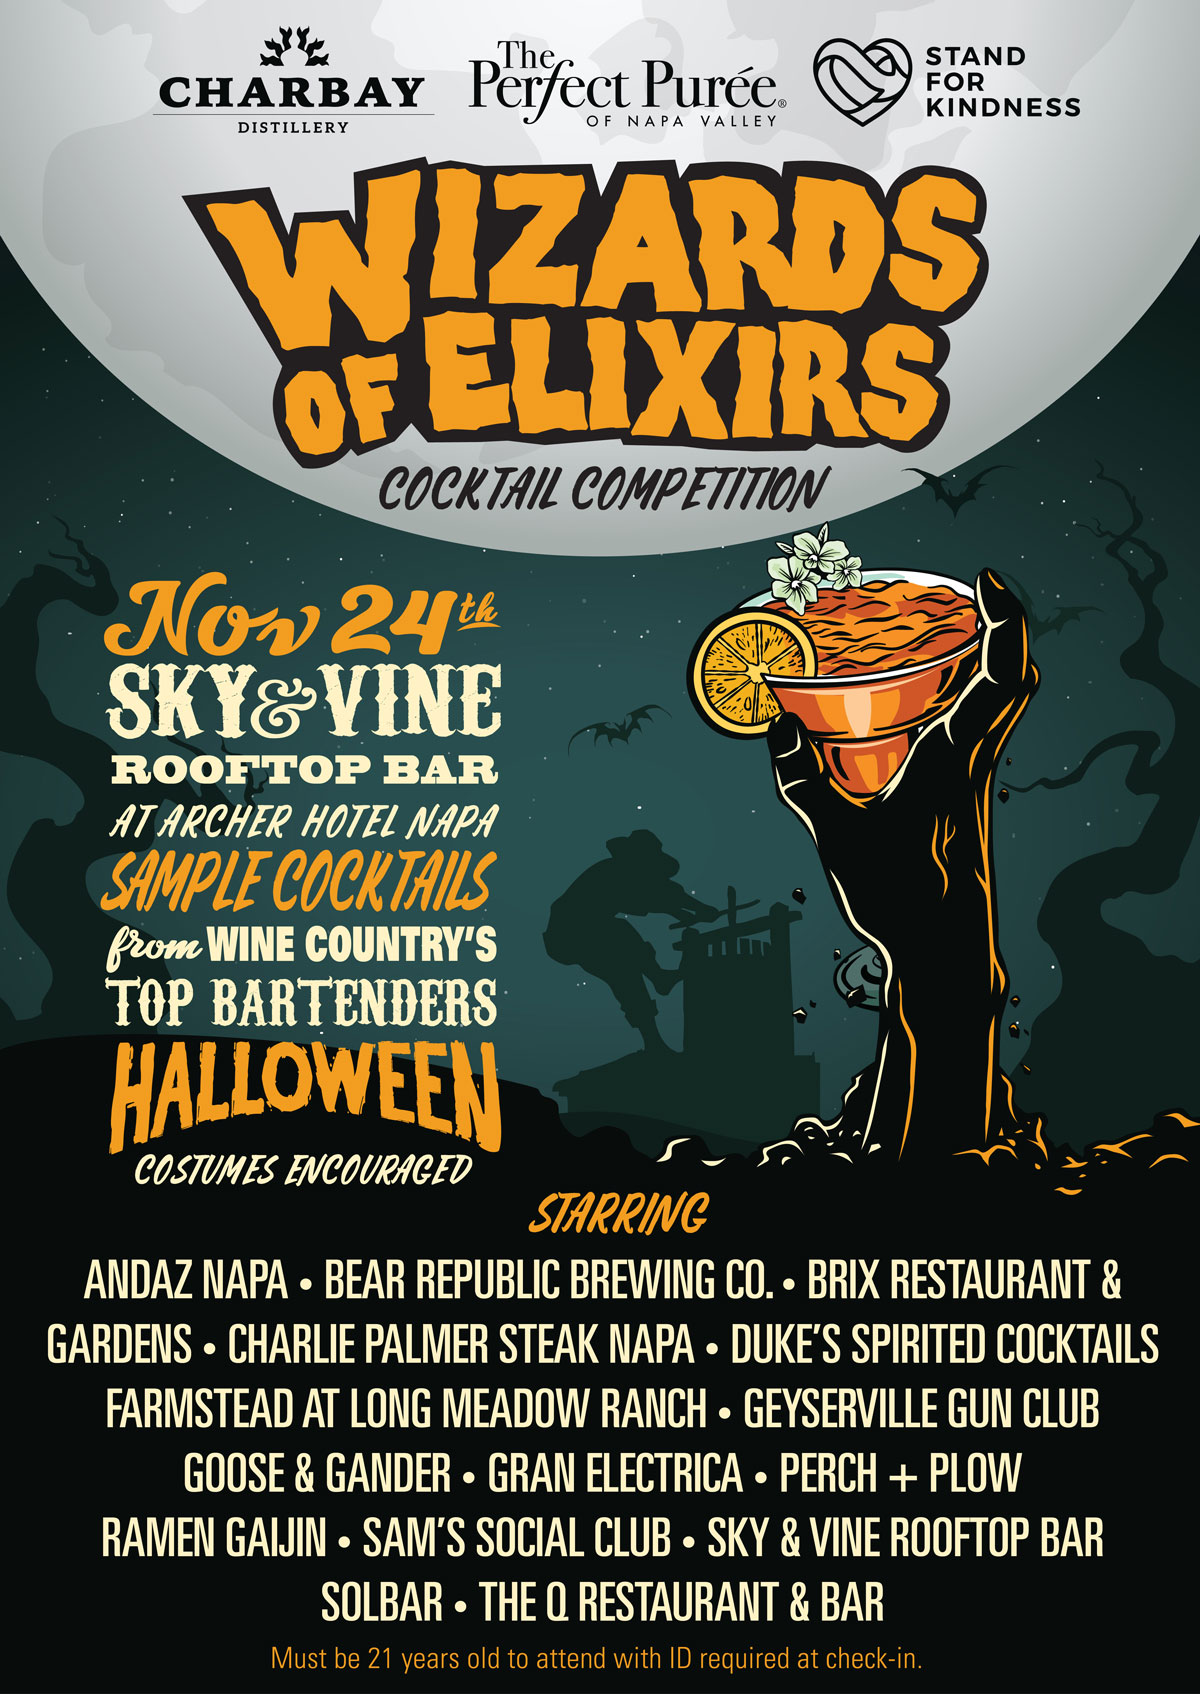 The Wizards of Elixirs Cocktail Competition